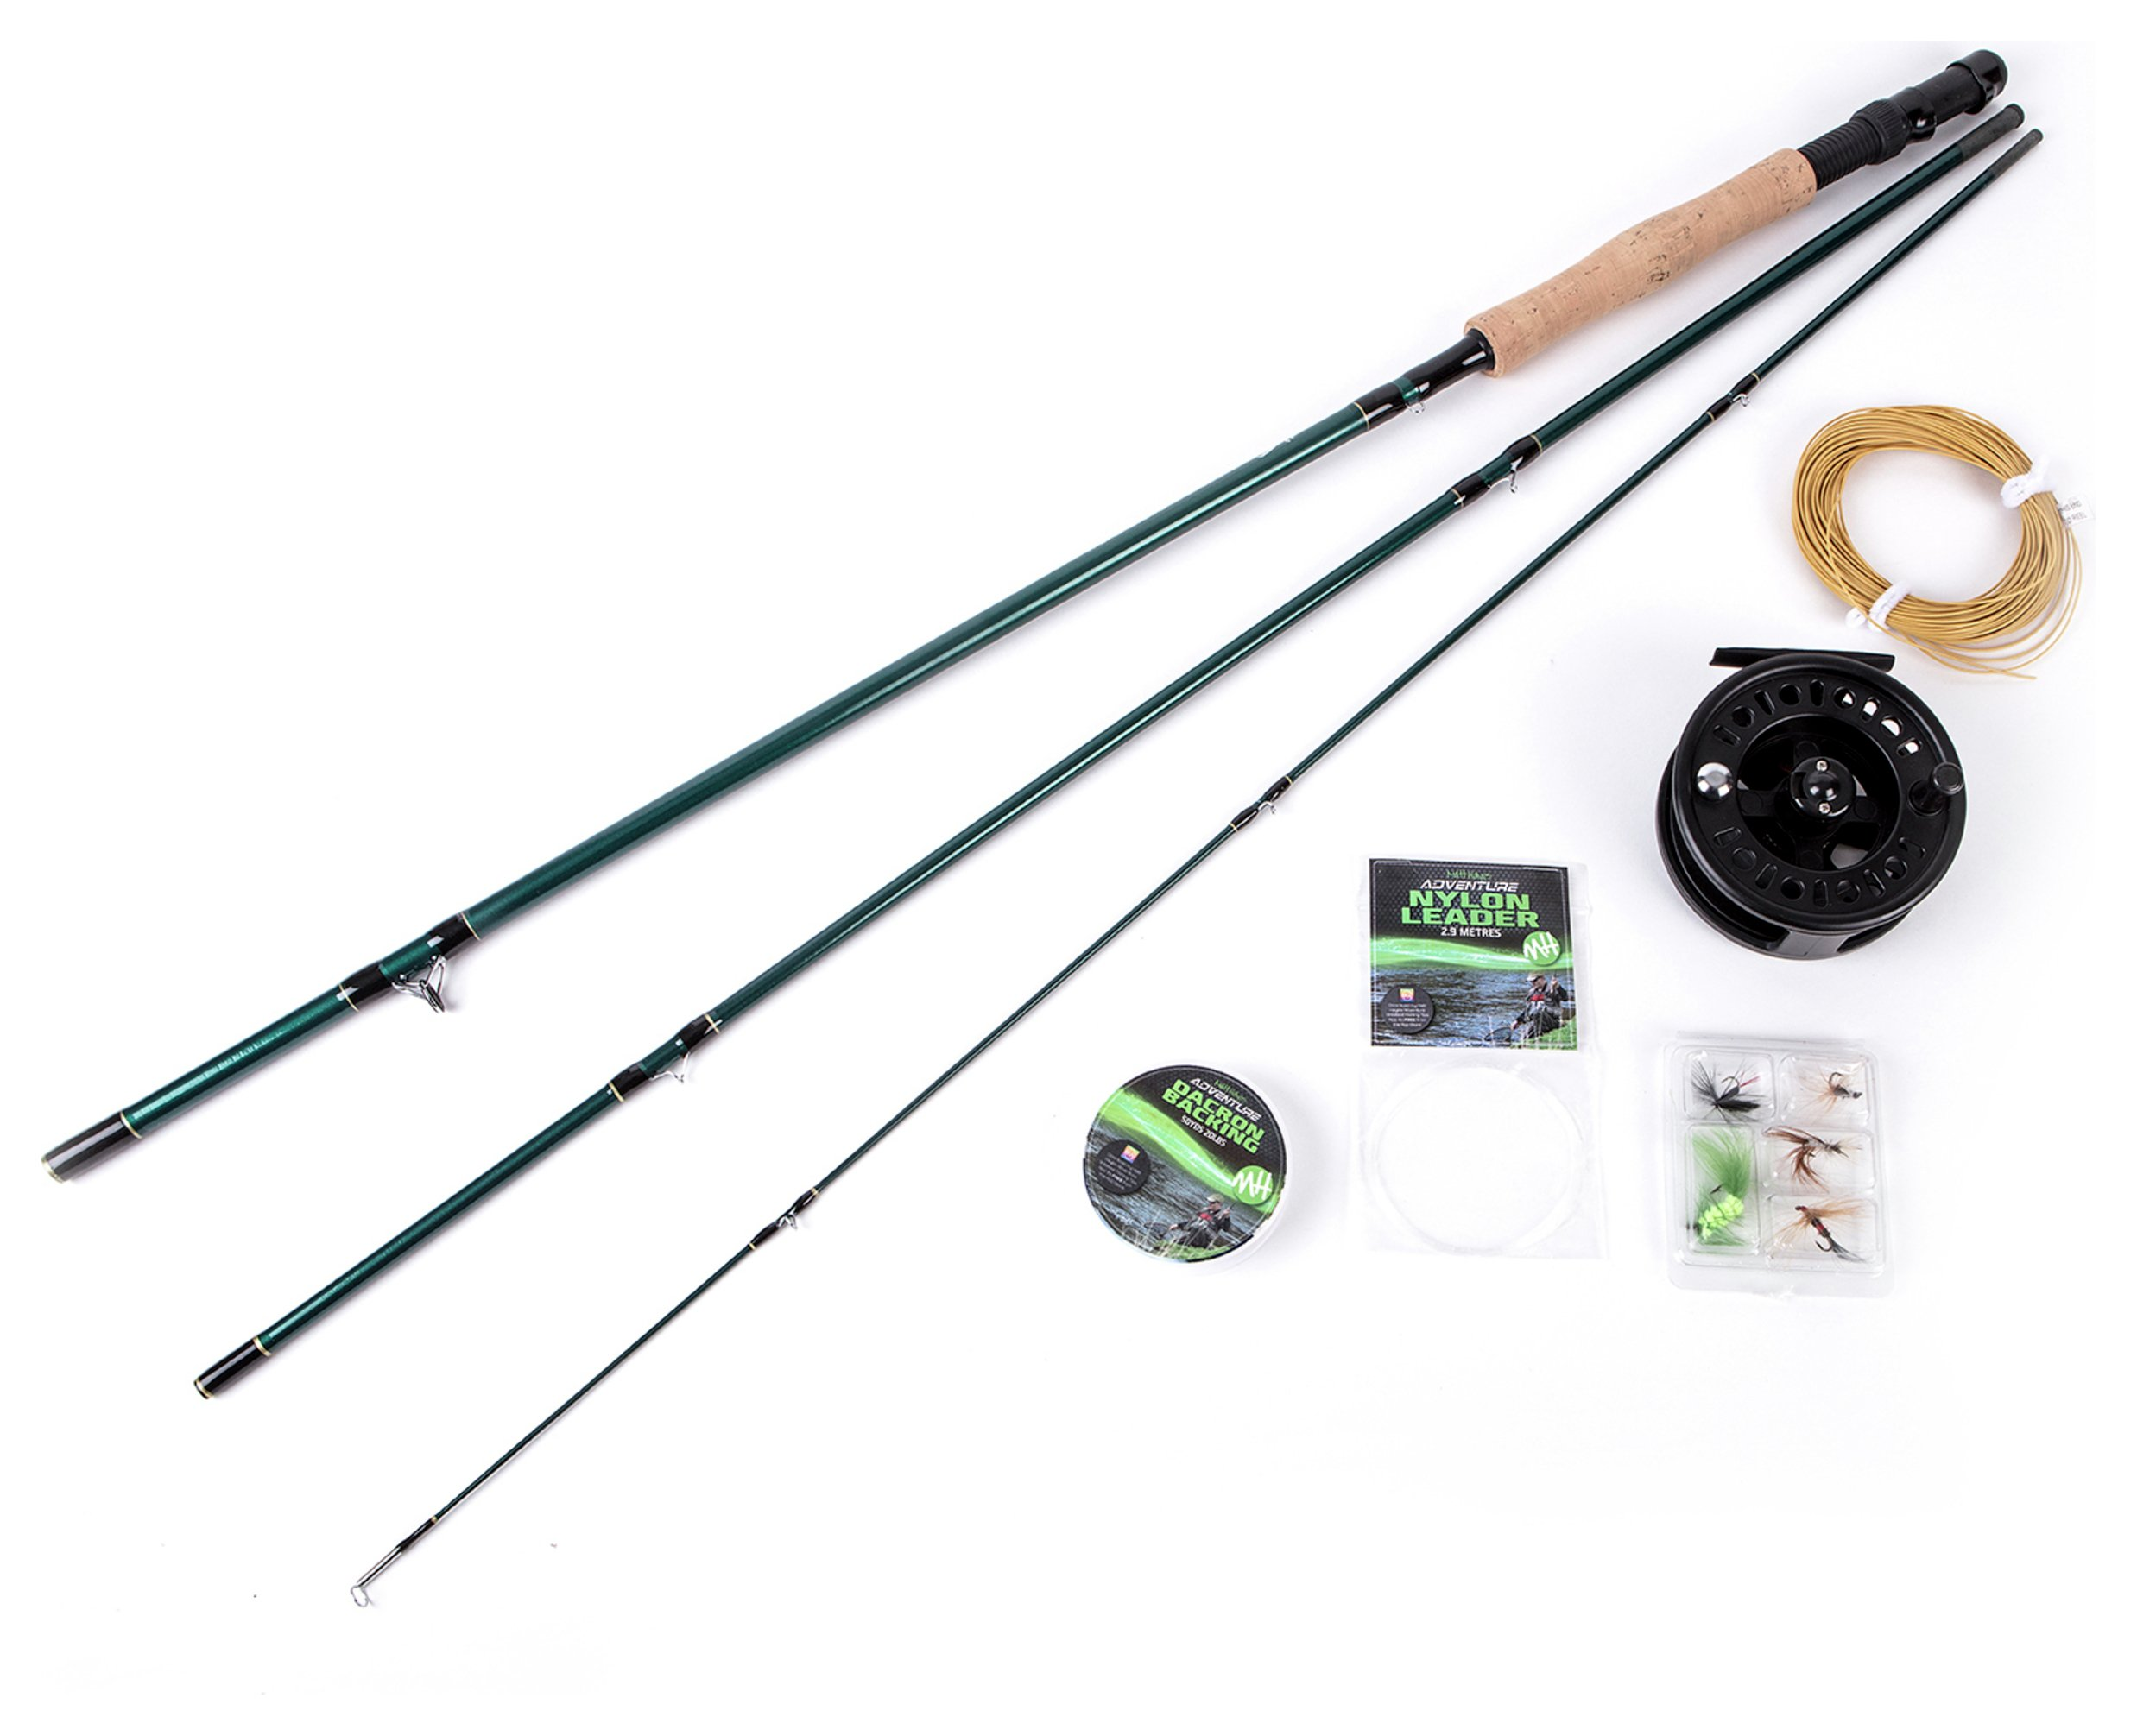 Matt Hayes Adventure Fly Fishing Rod, Reel & Accessories